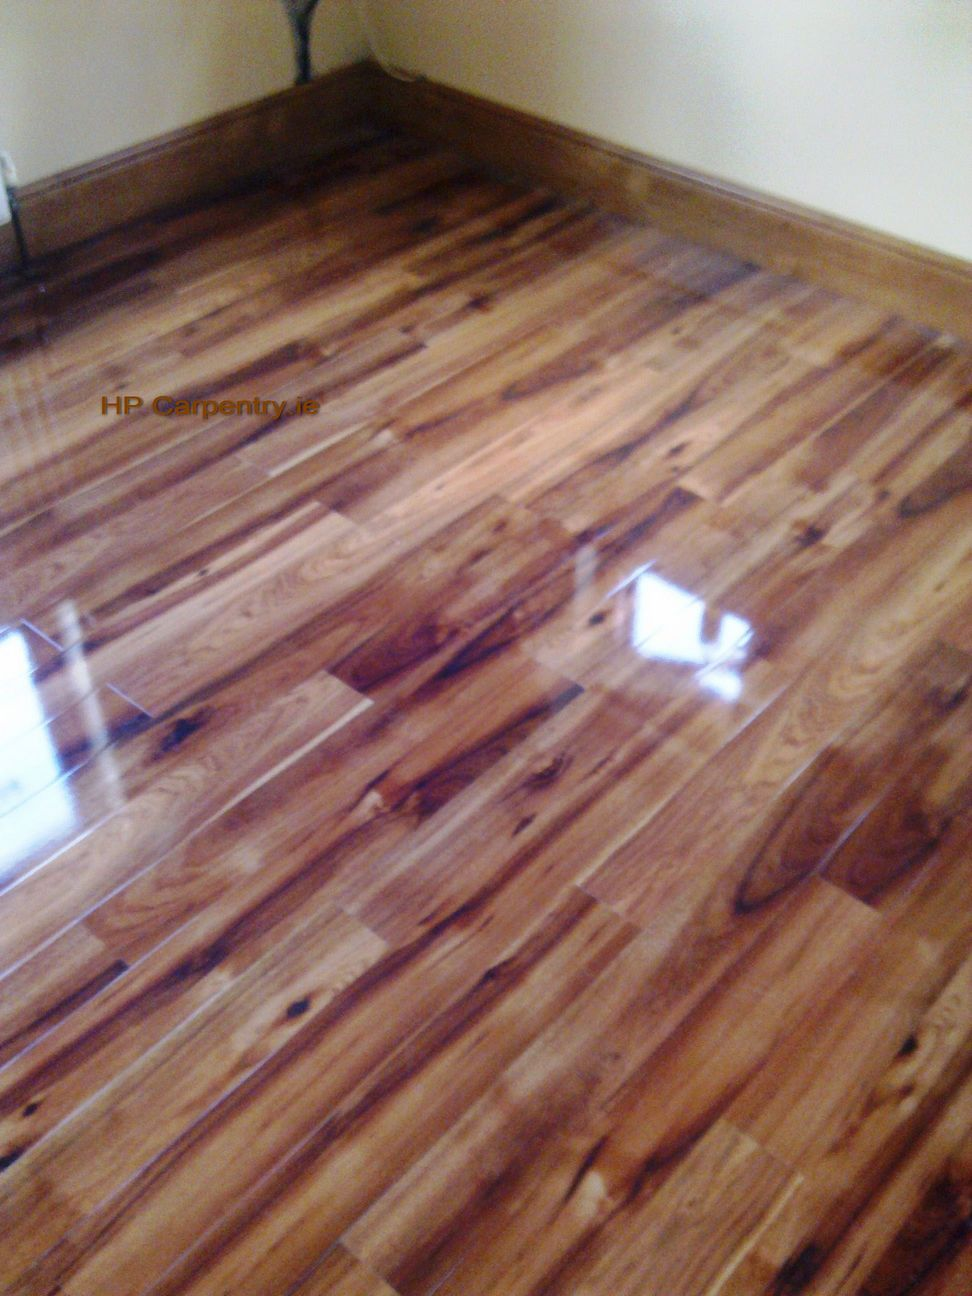 View Pictures And Photos For Hp Carpentry